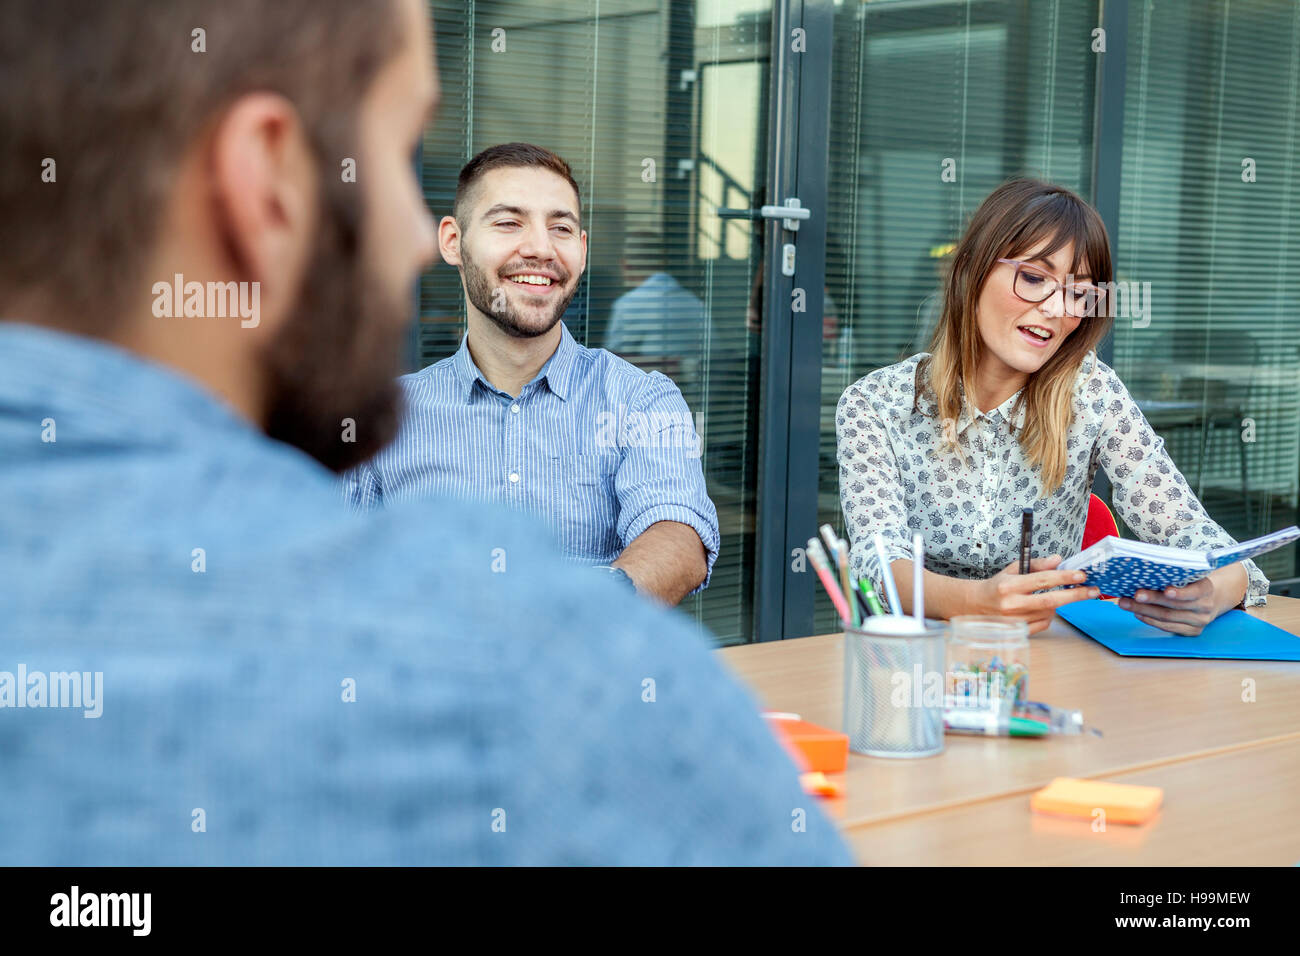 Discussion in business meeting - Stock Image